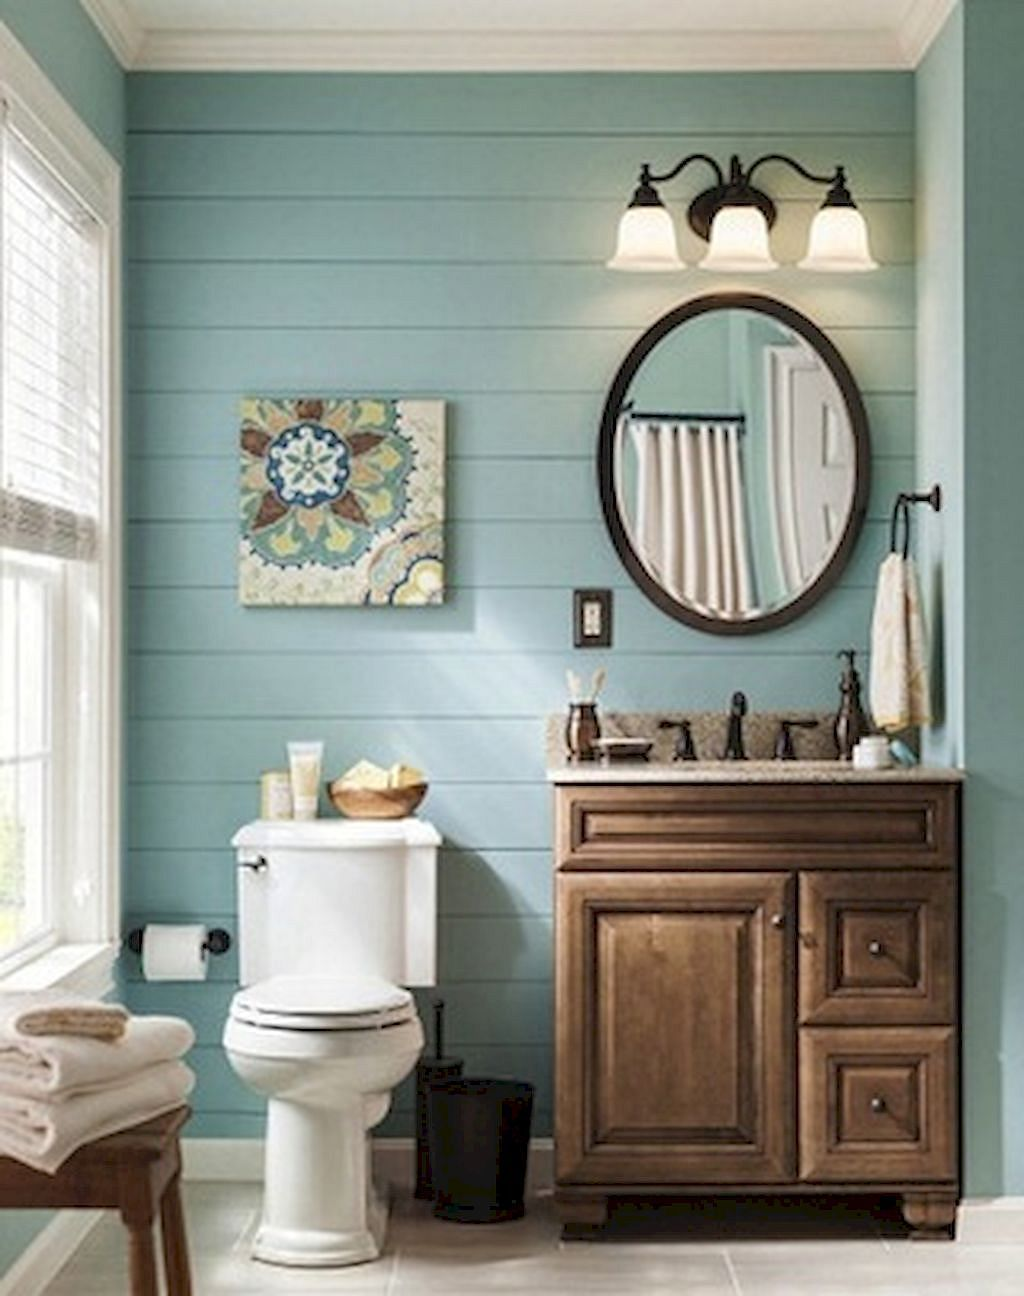 Insanely Cool Small Master Bathroom Remodel Ideas On A ...